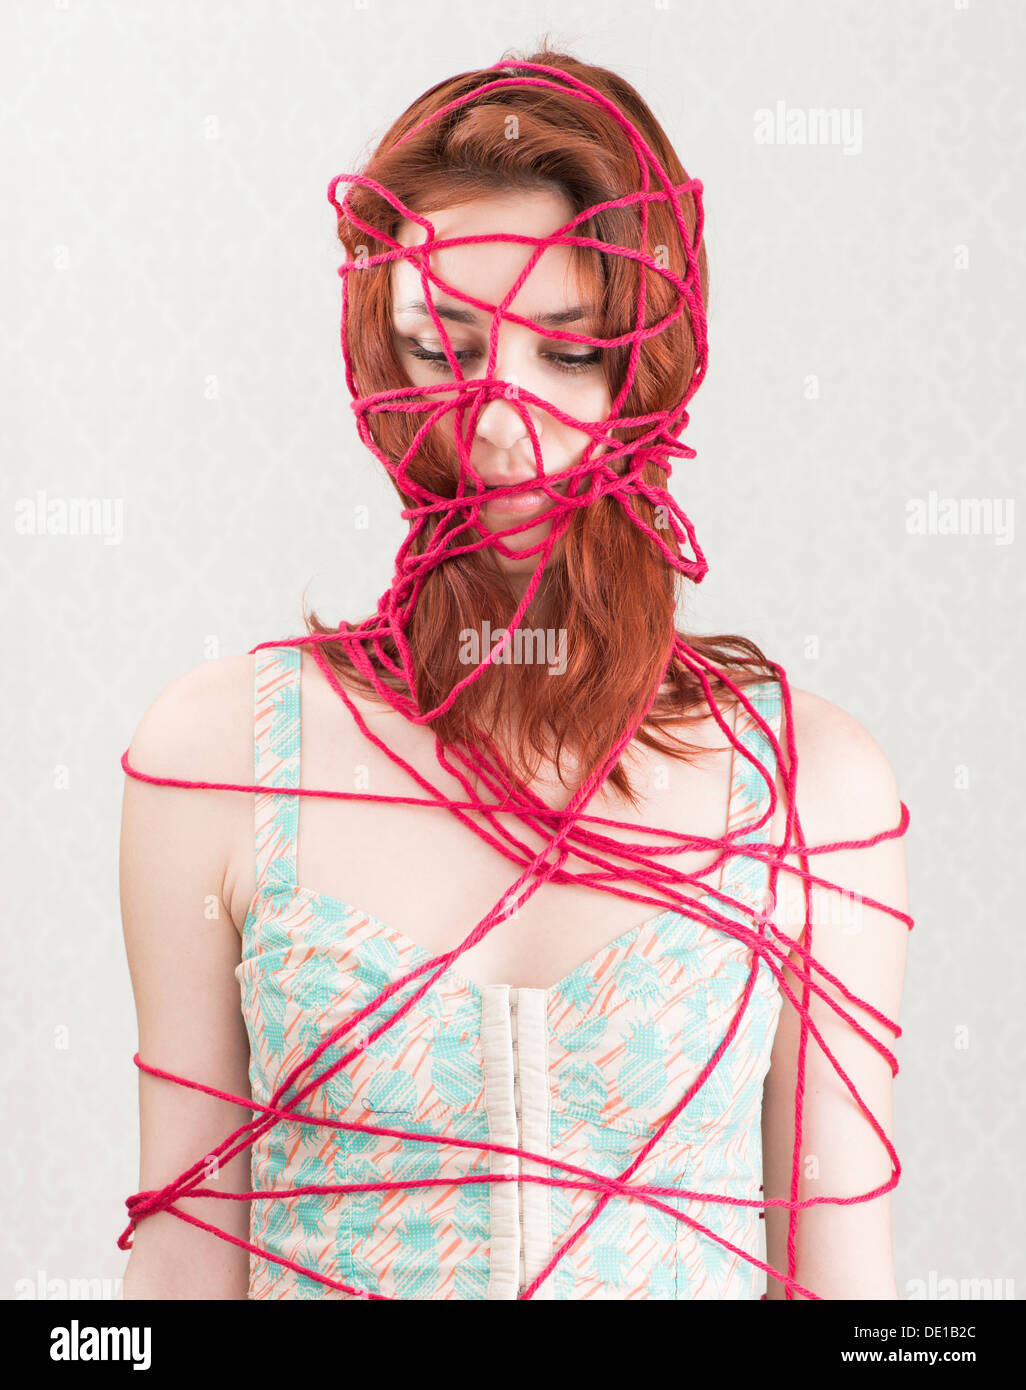 Conceptual image of woman trapped and constrained with red cotton yarn - Stock Image